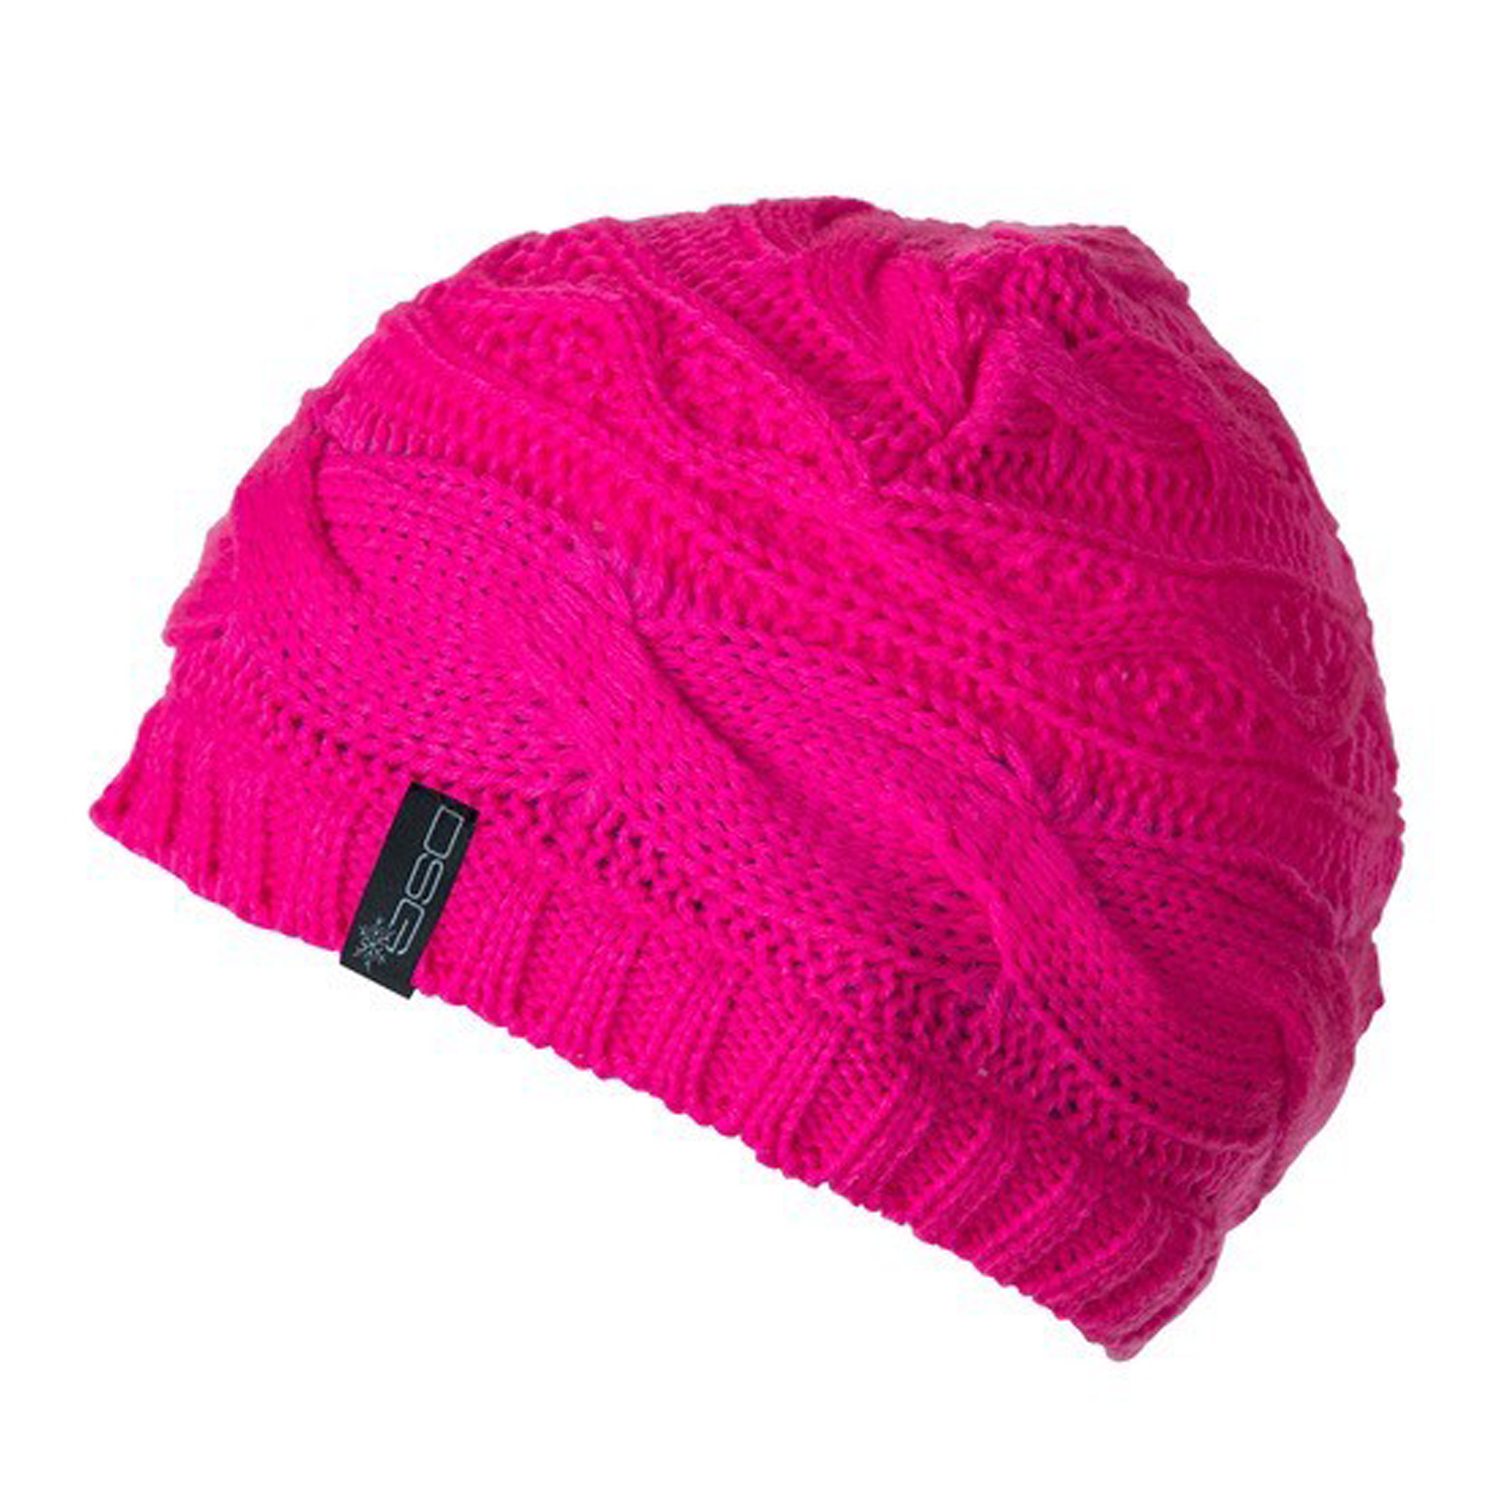 DSG Womens Blaze Pink Beanie - Cable Knit